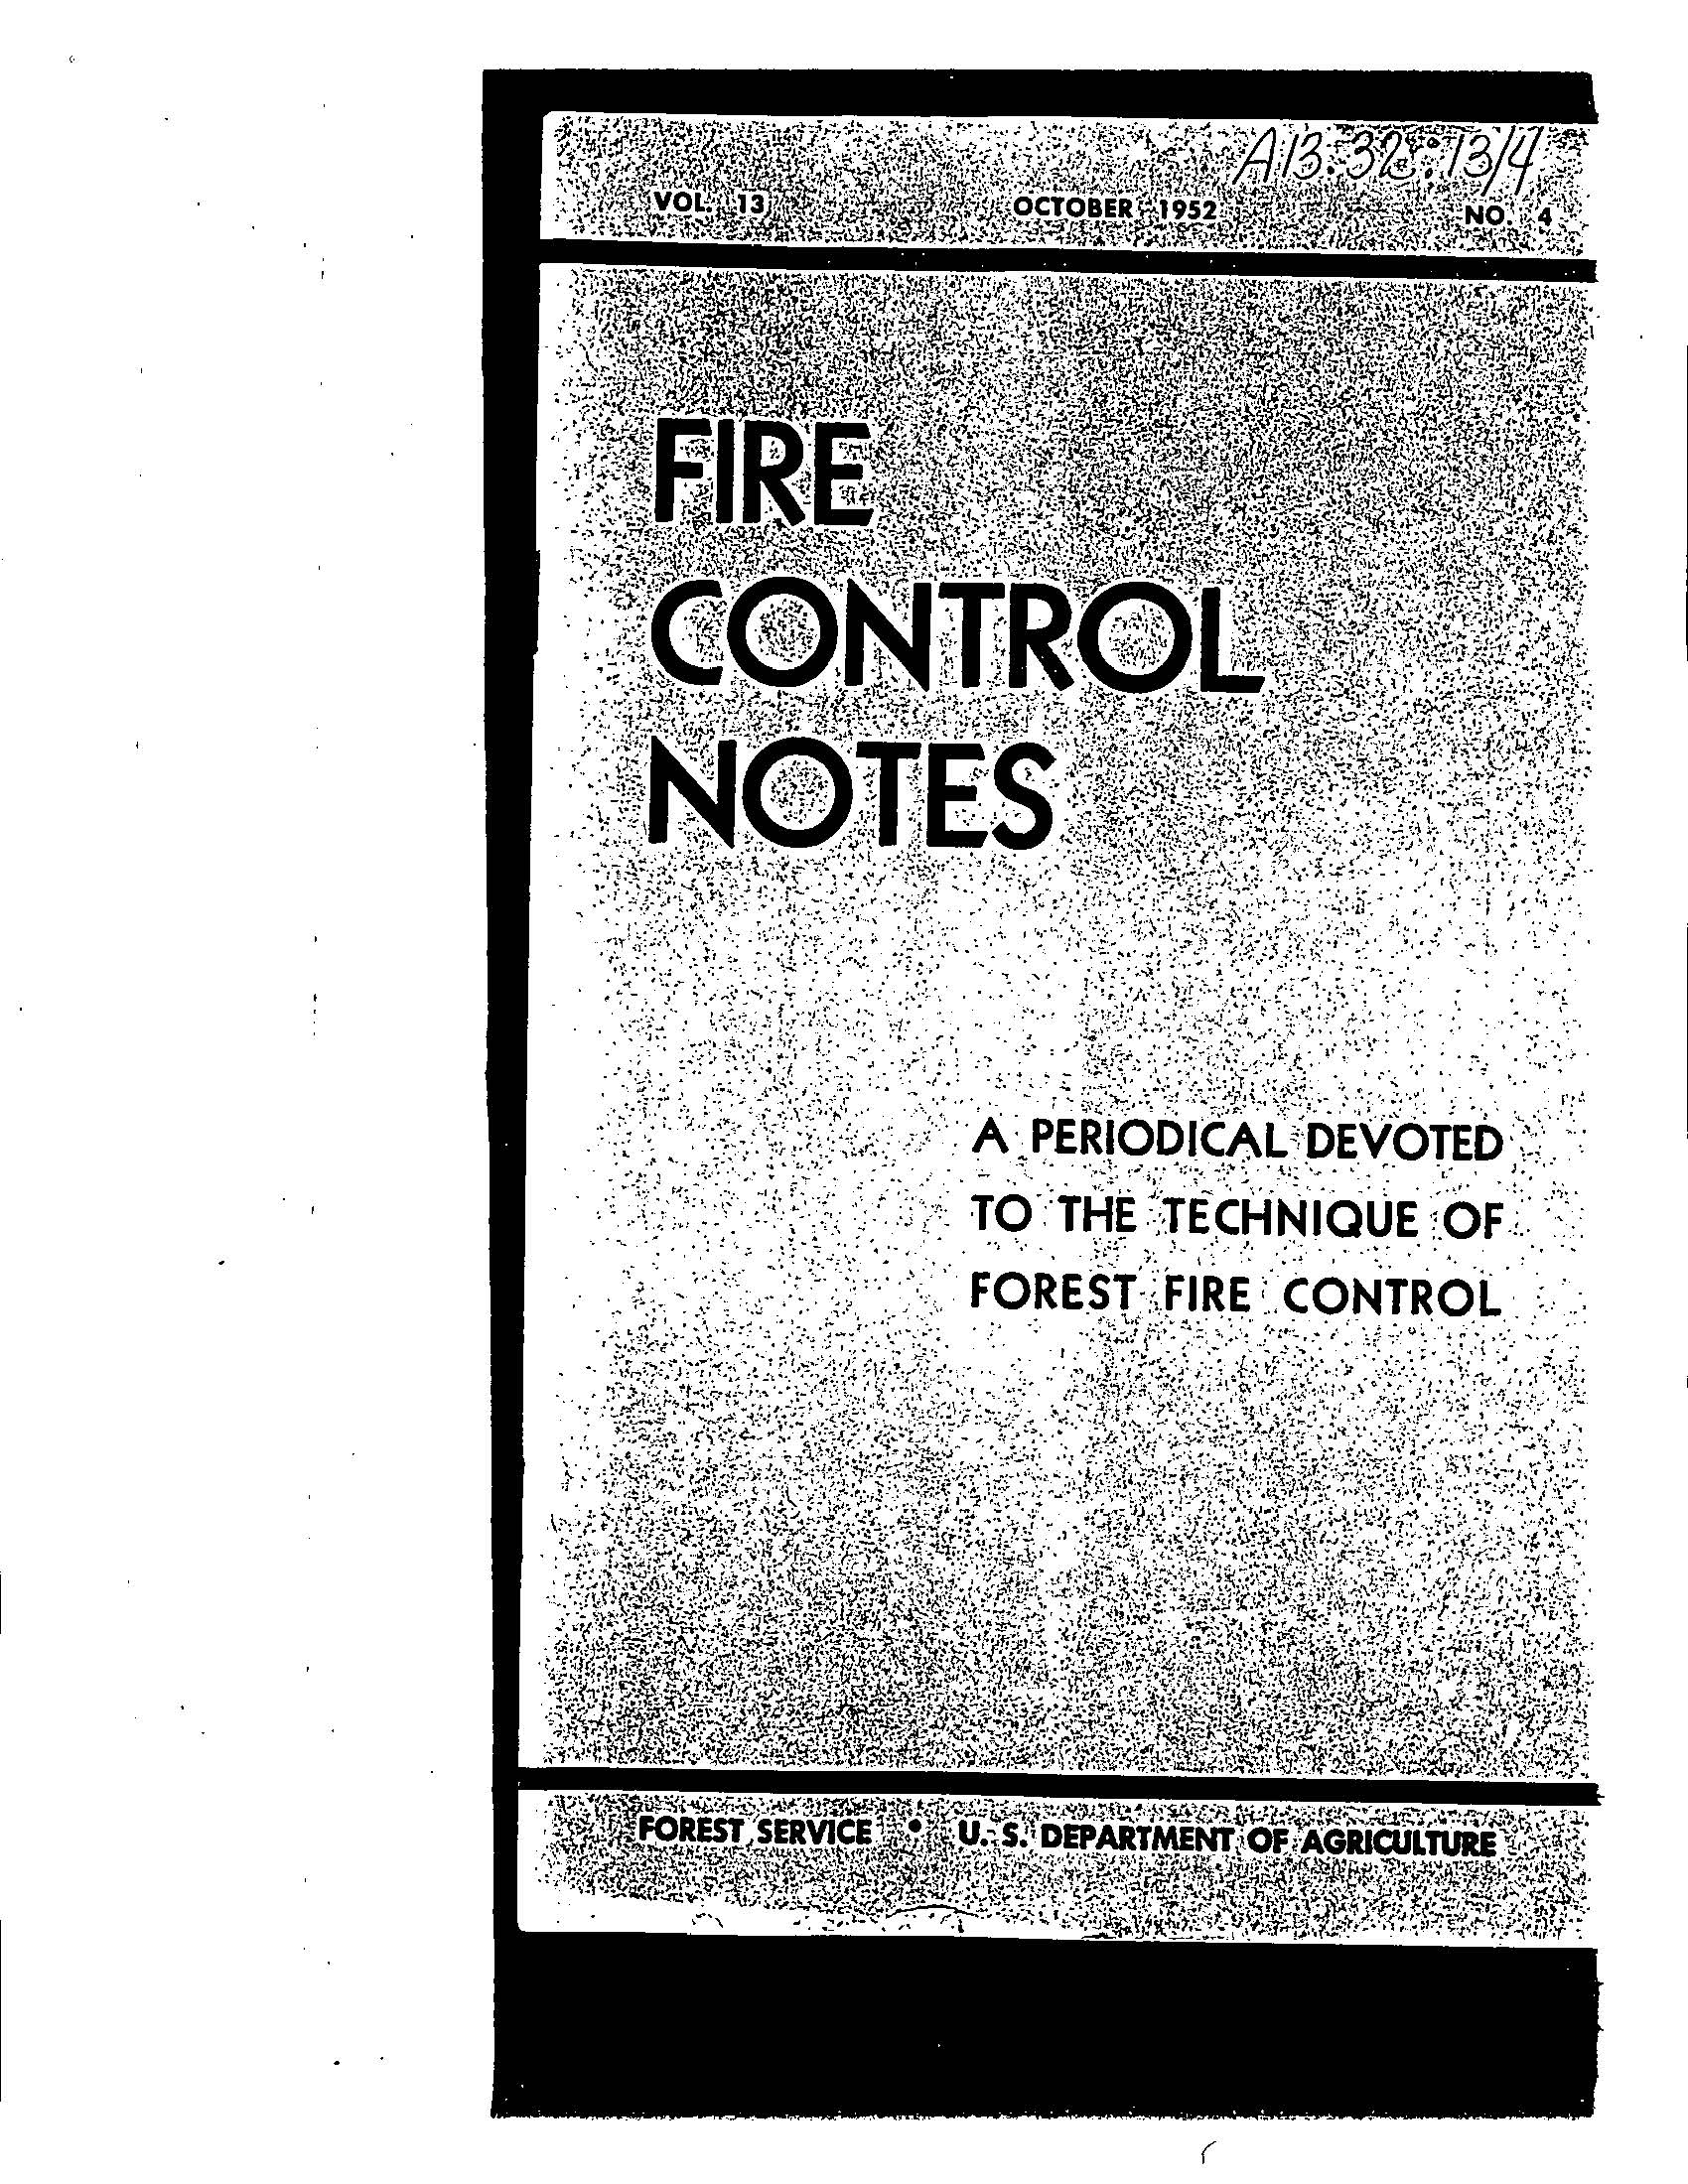 Cover of Fire Management Today Volume 13, Issue 04